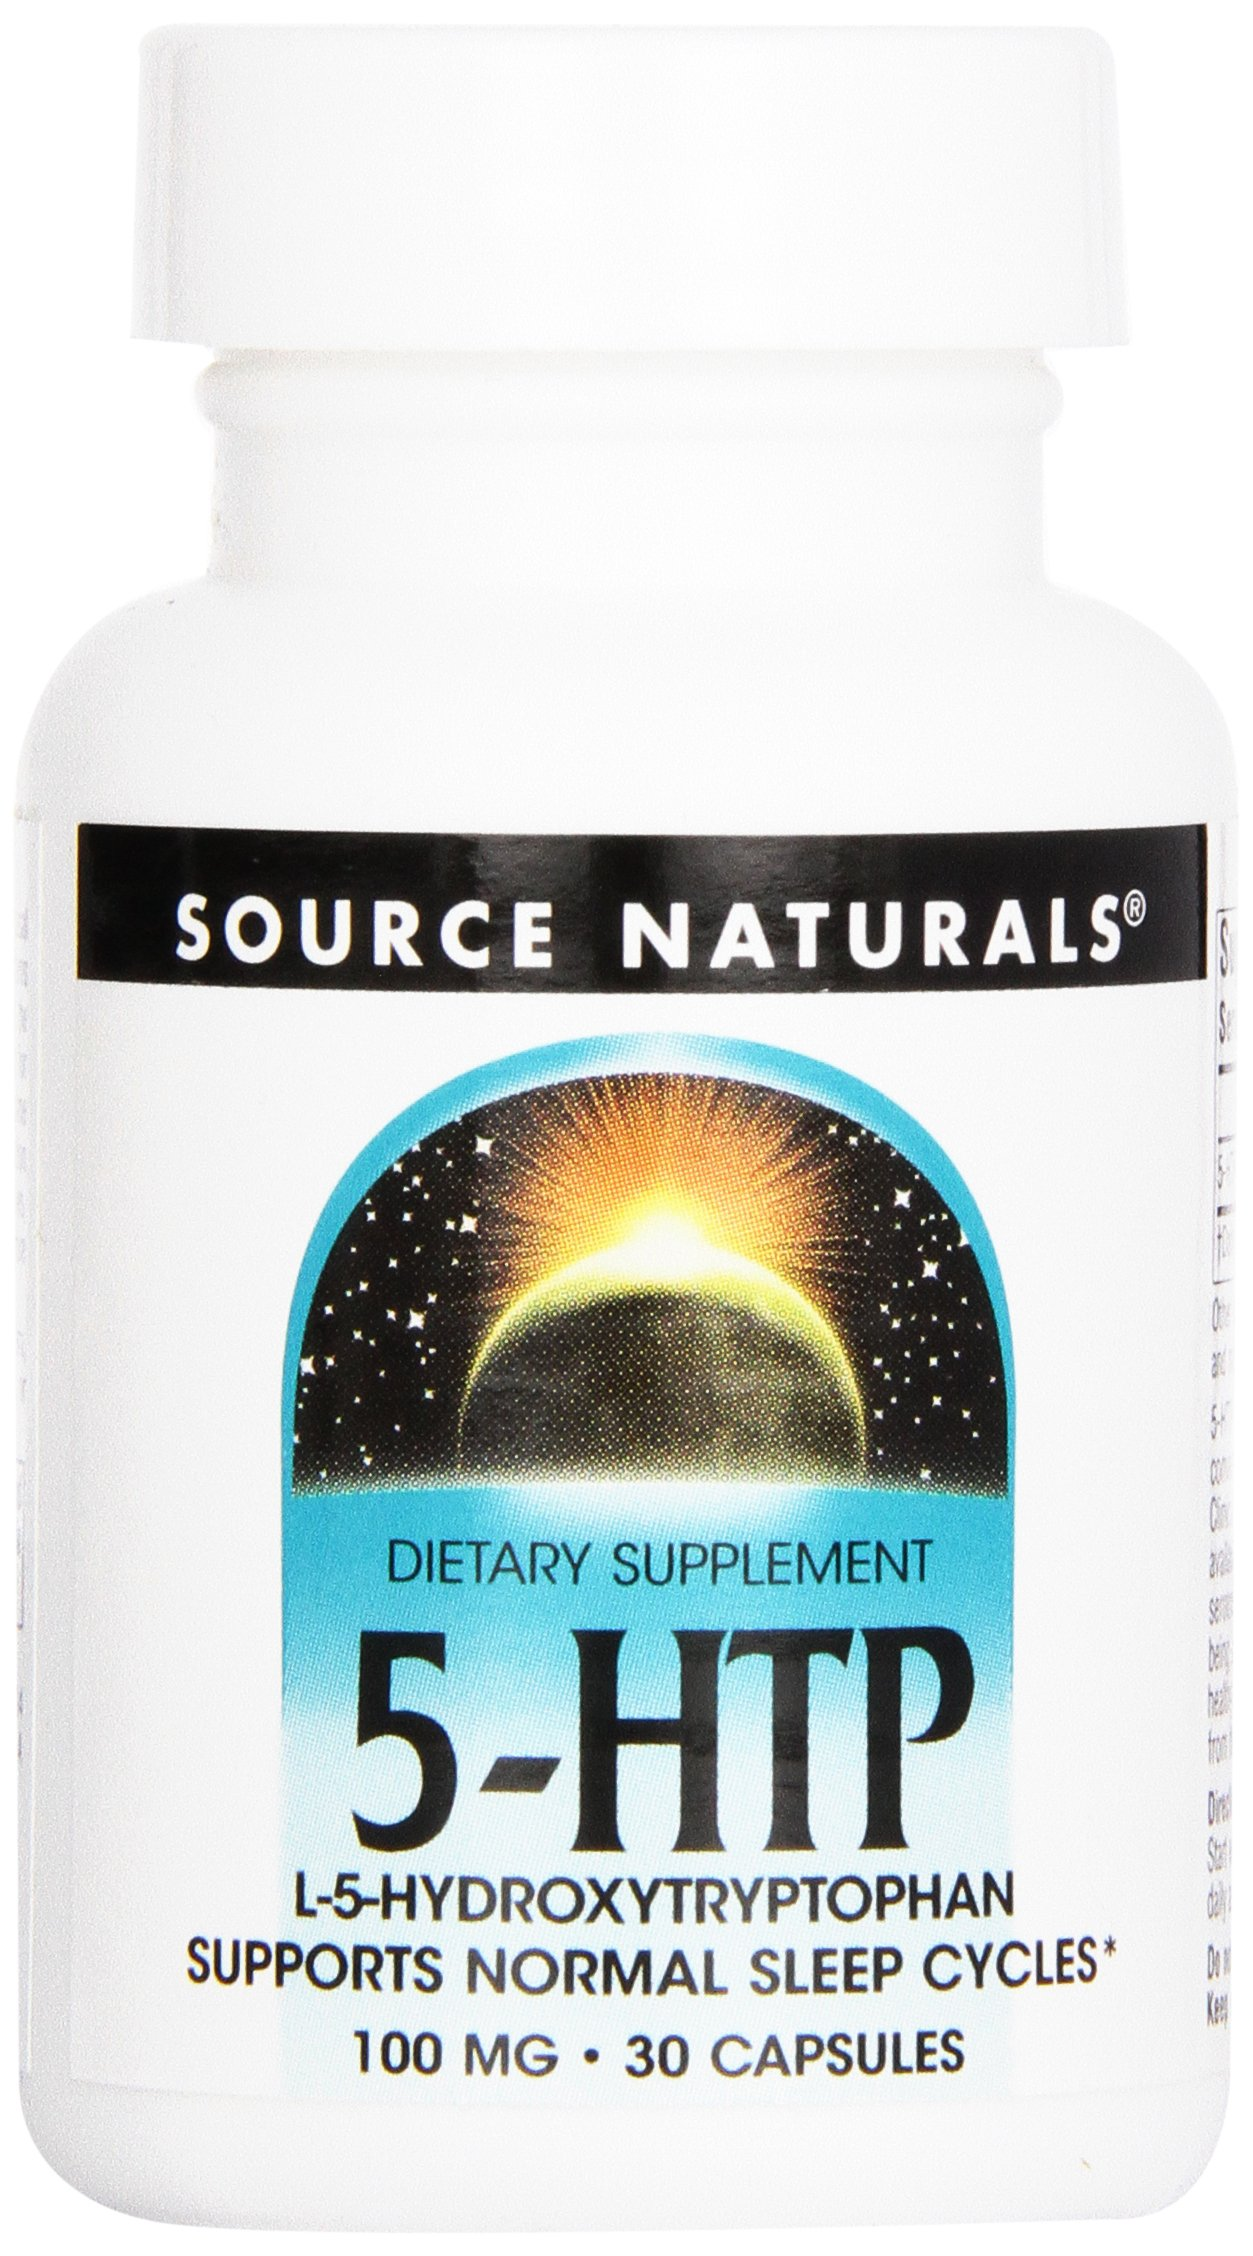 Source Naturals 5-HTP, 100mg, 30 Capsules (Pack of 12)